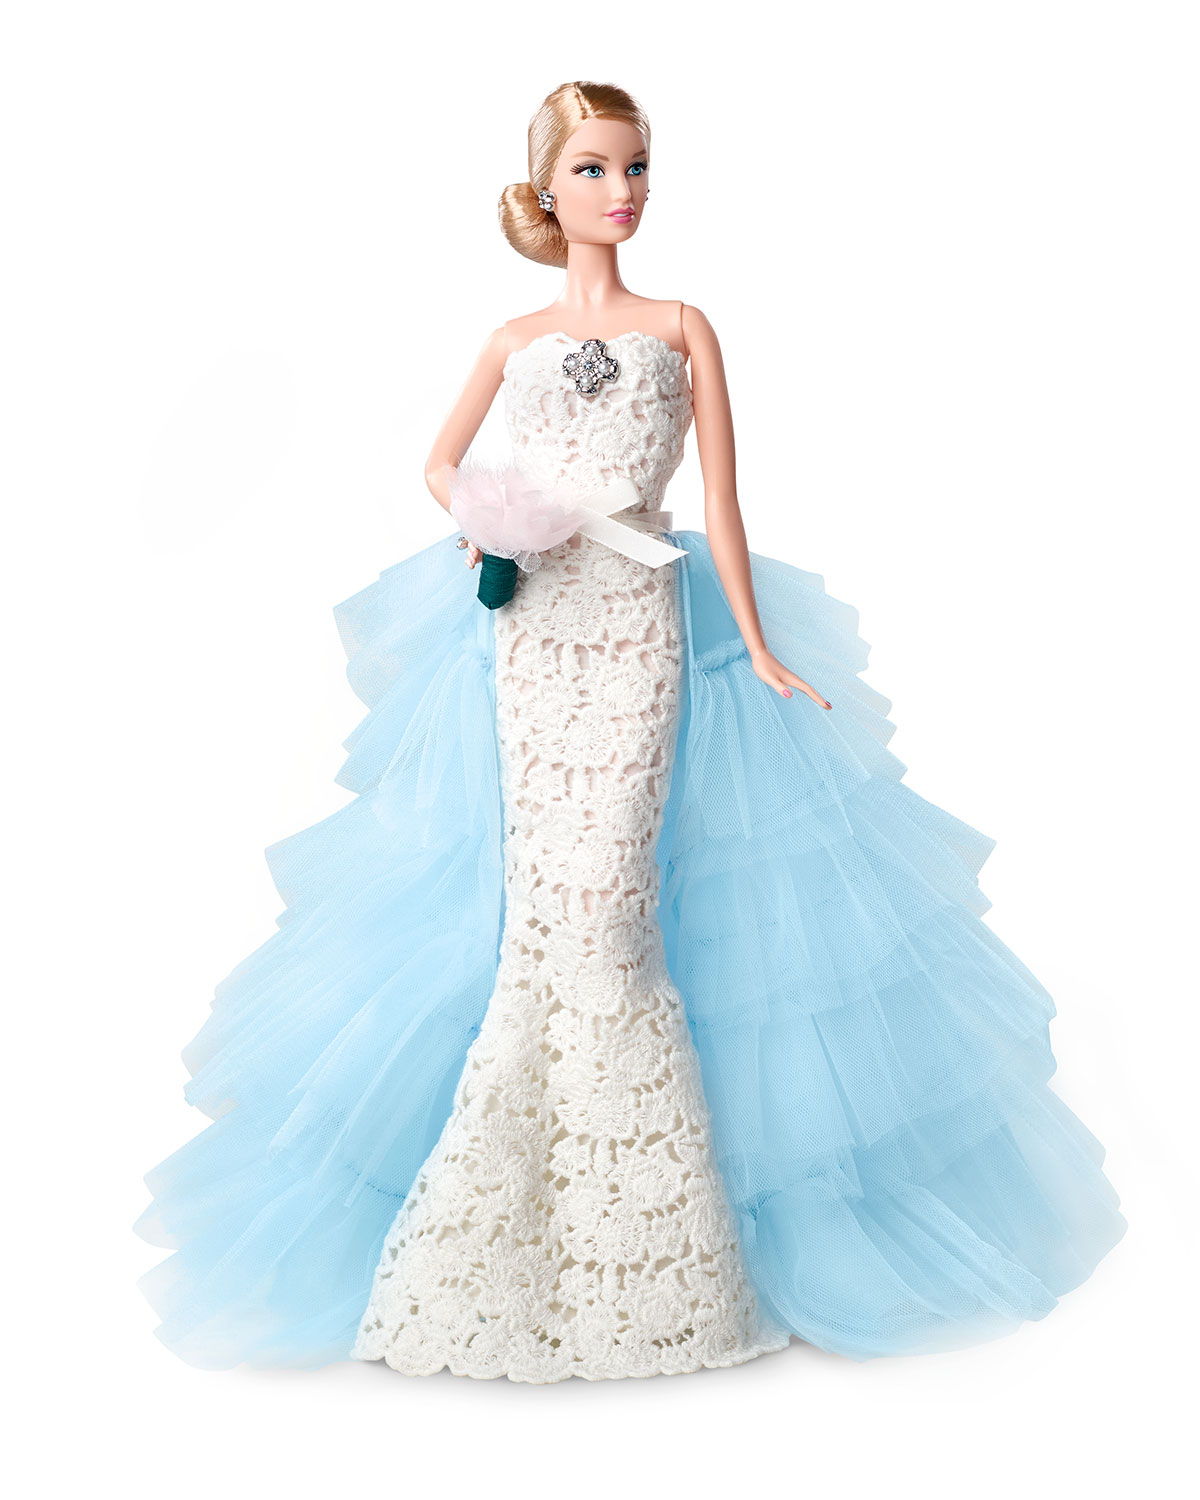 Oscar de la Renta Barbie® Bride Doll